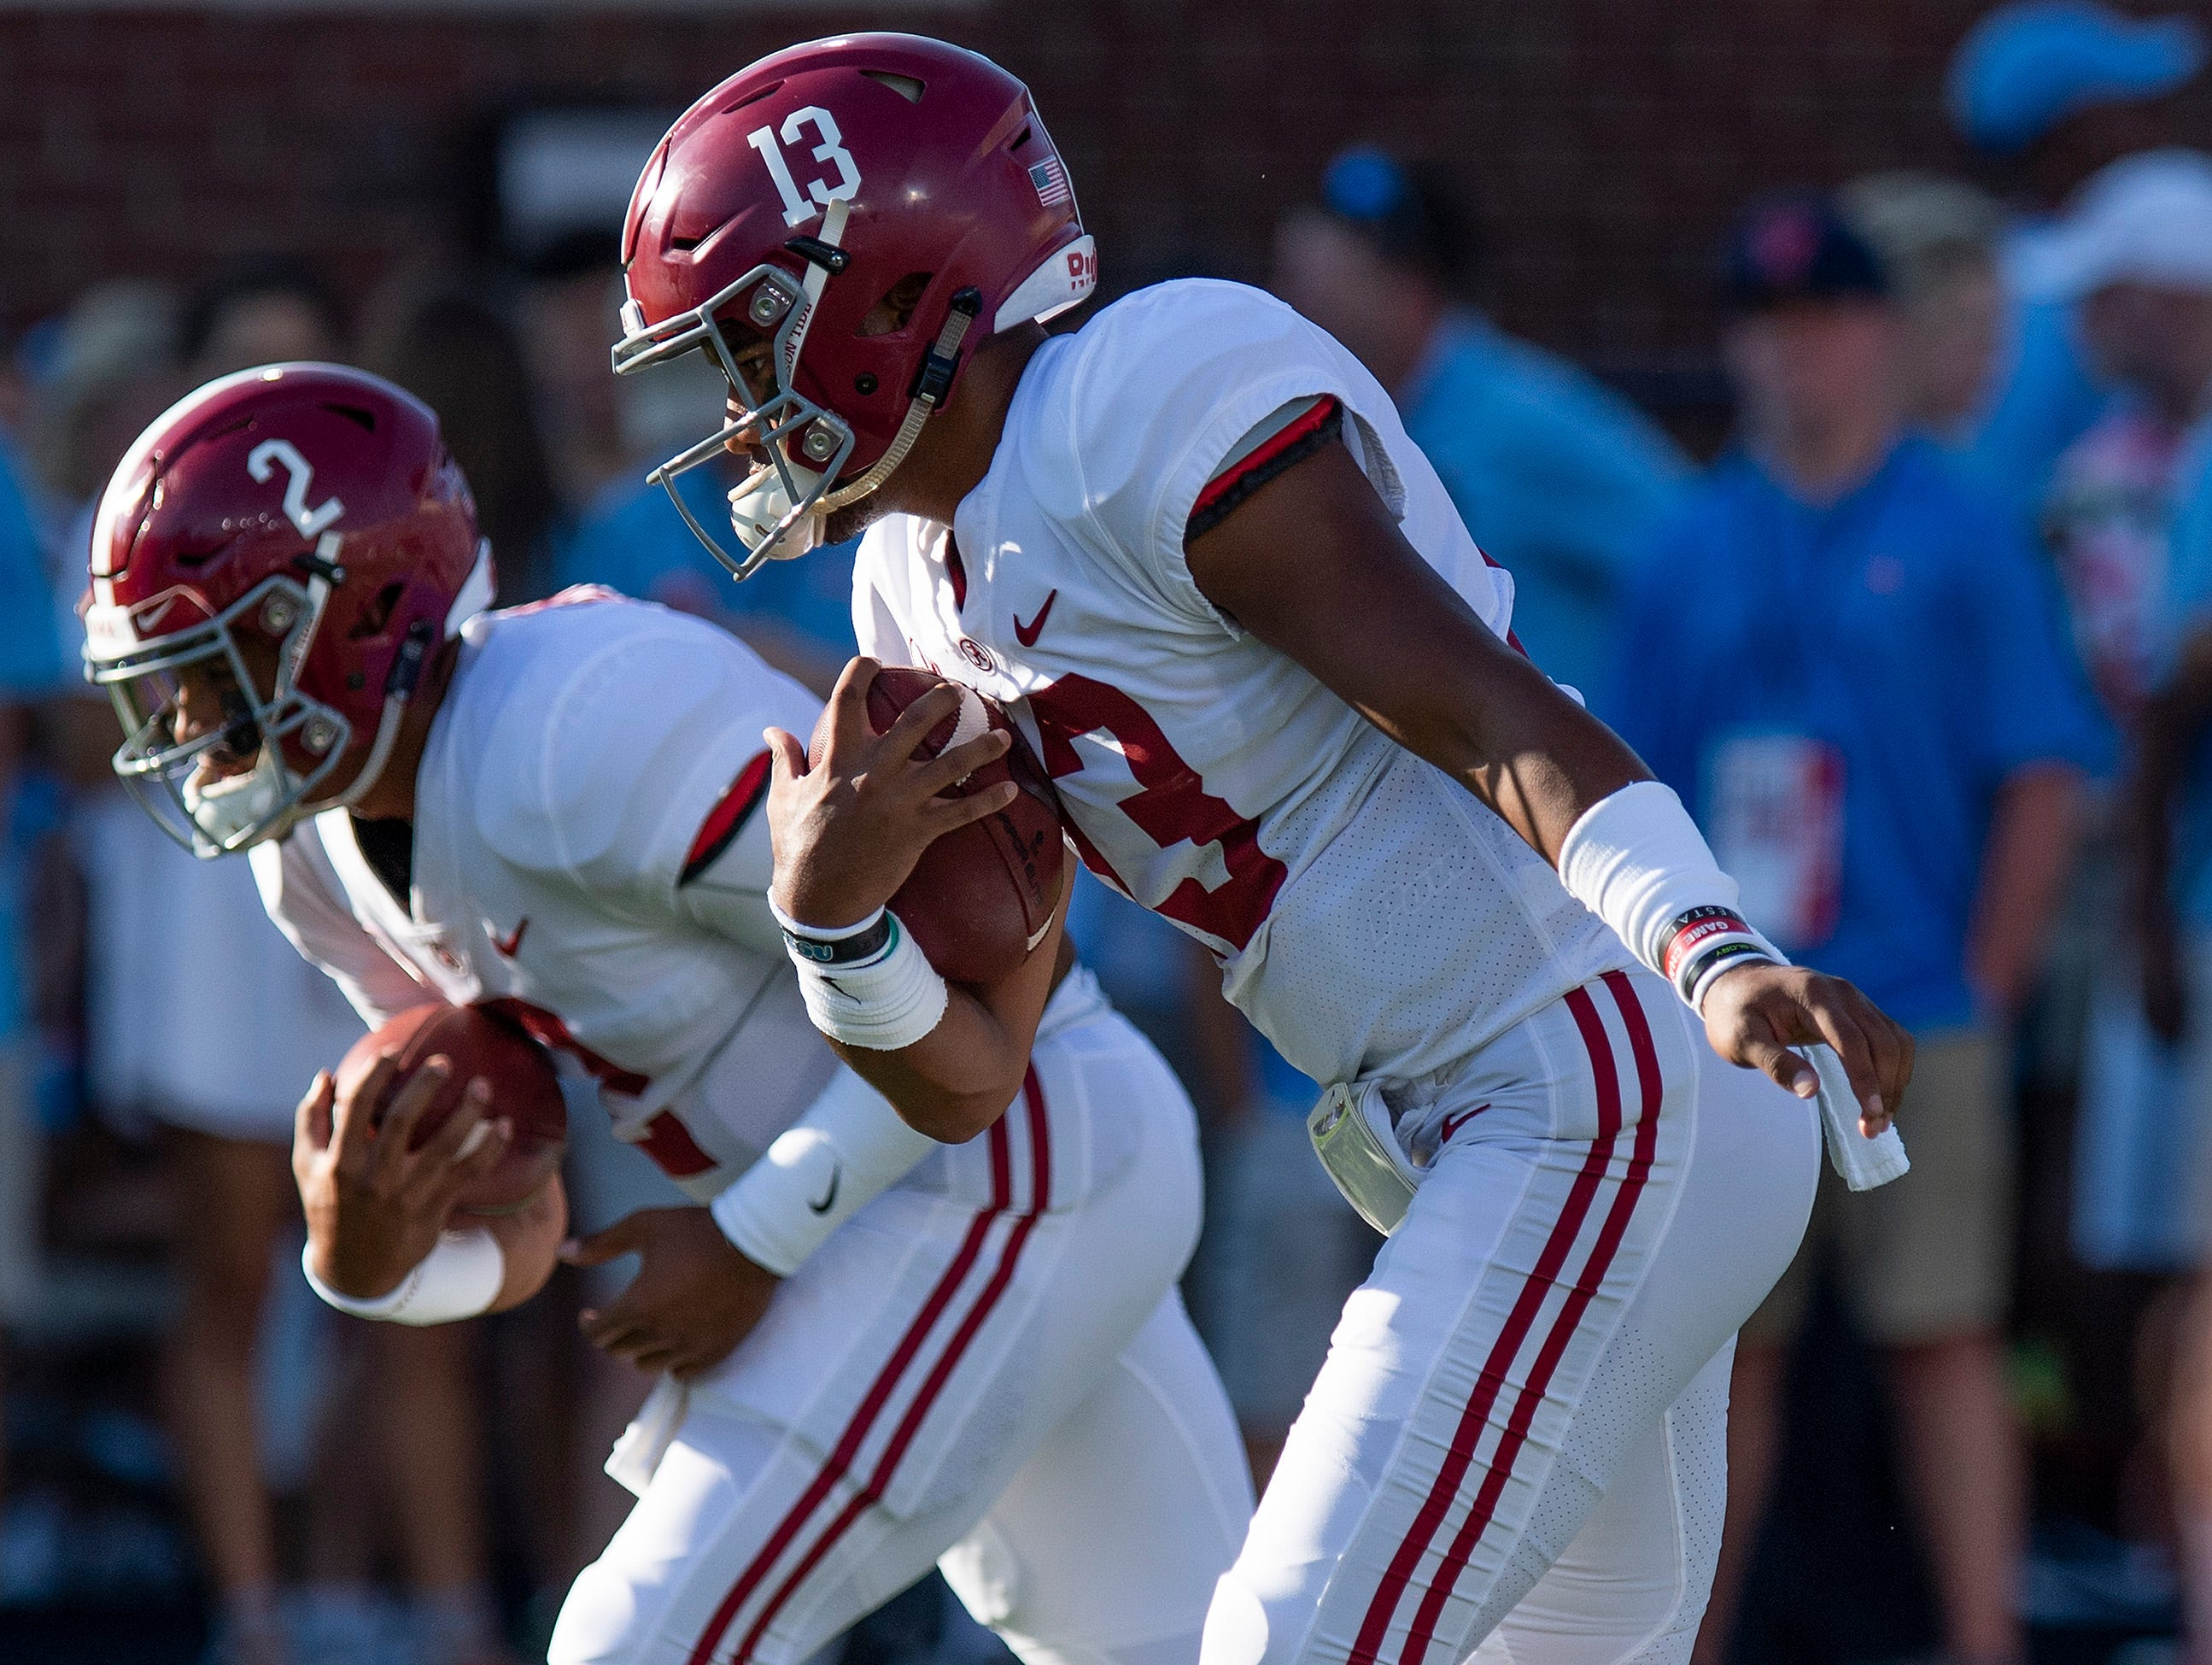 Alabama quarterbacks Tua Tagovailoa (13) and Jalen Hurts (2) as the Alabama football team warms up before the Ole Miss game in Oxford, Ms., on Saturday September 15, 2018.